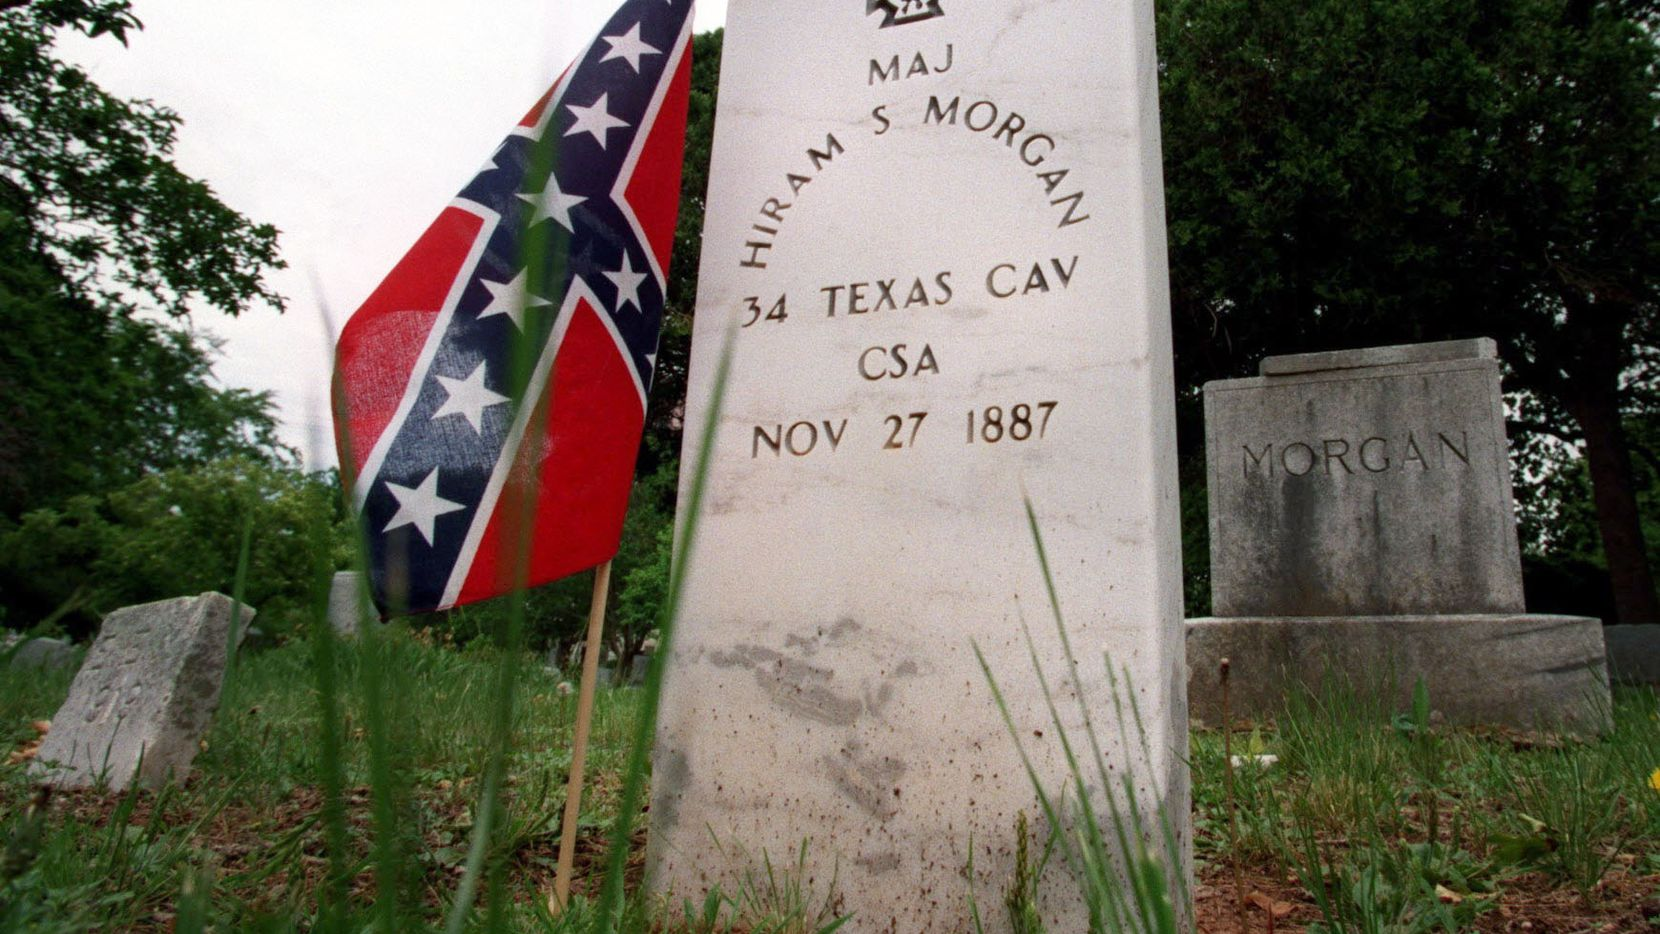 The headstone of confederate soldier Major Hiram S. Morgan is decorated with the confederate flag at Greenwood Cemetery north of downtown Dallas.  The Daughters of the Confederacy help to decorate Greenwood Cemetery by placing confederate flags next to the graves of the confederate soldiers and United States flags next to the graves of soldiers who served the United States in the Civil War.